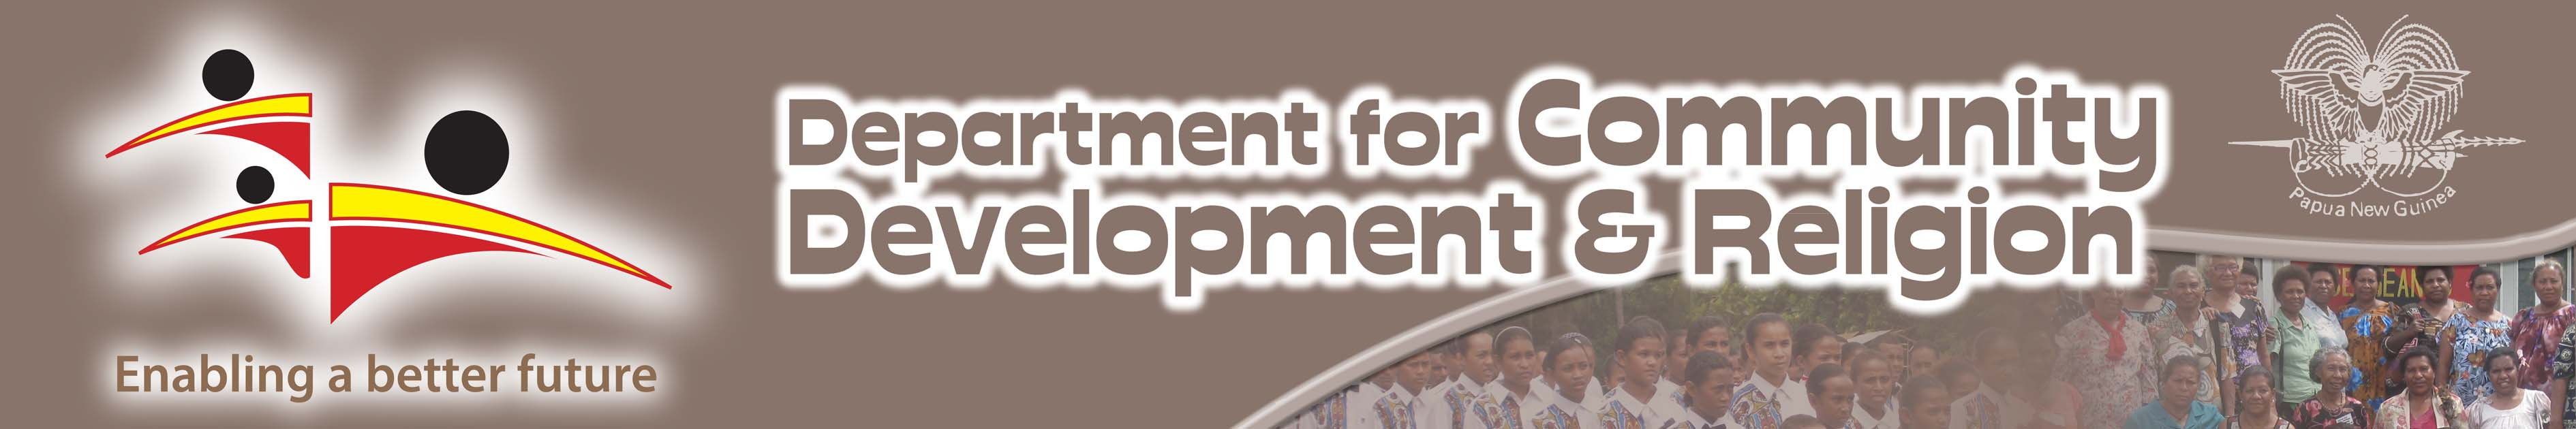 Department for Community Development